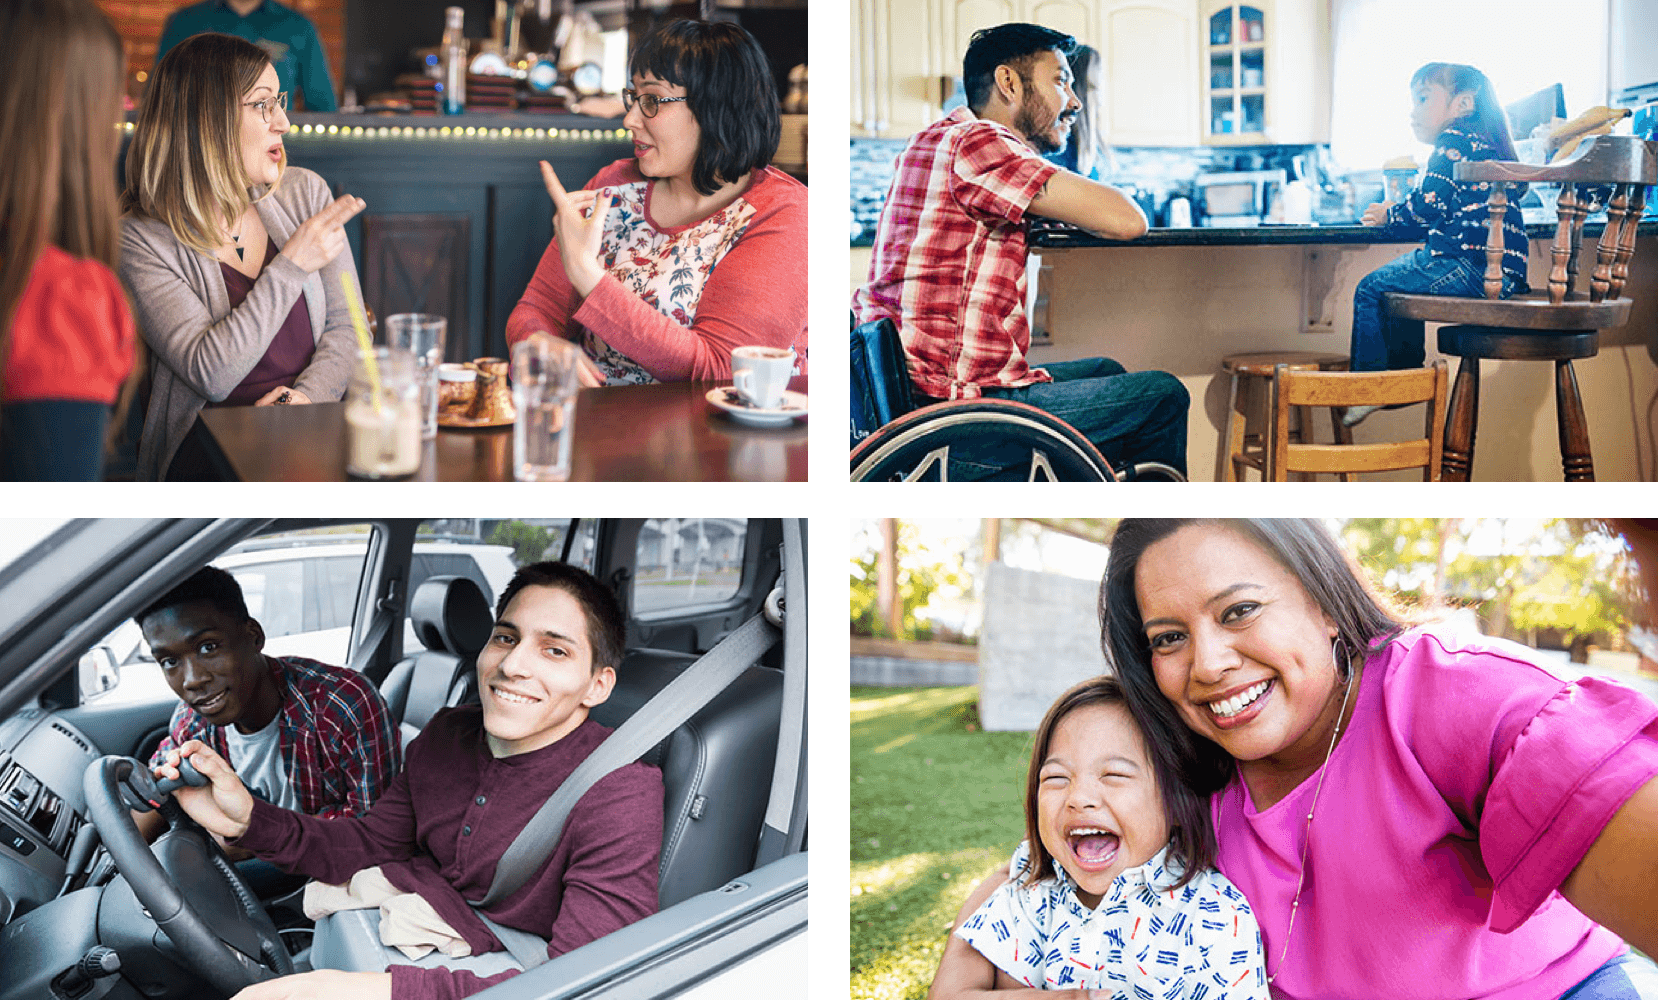 A selection of the high-quality images from The Disability Collection showing people with various disabilities in everyday life.